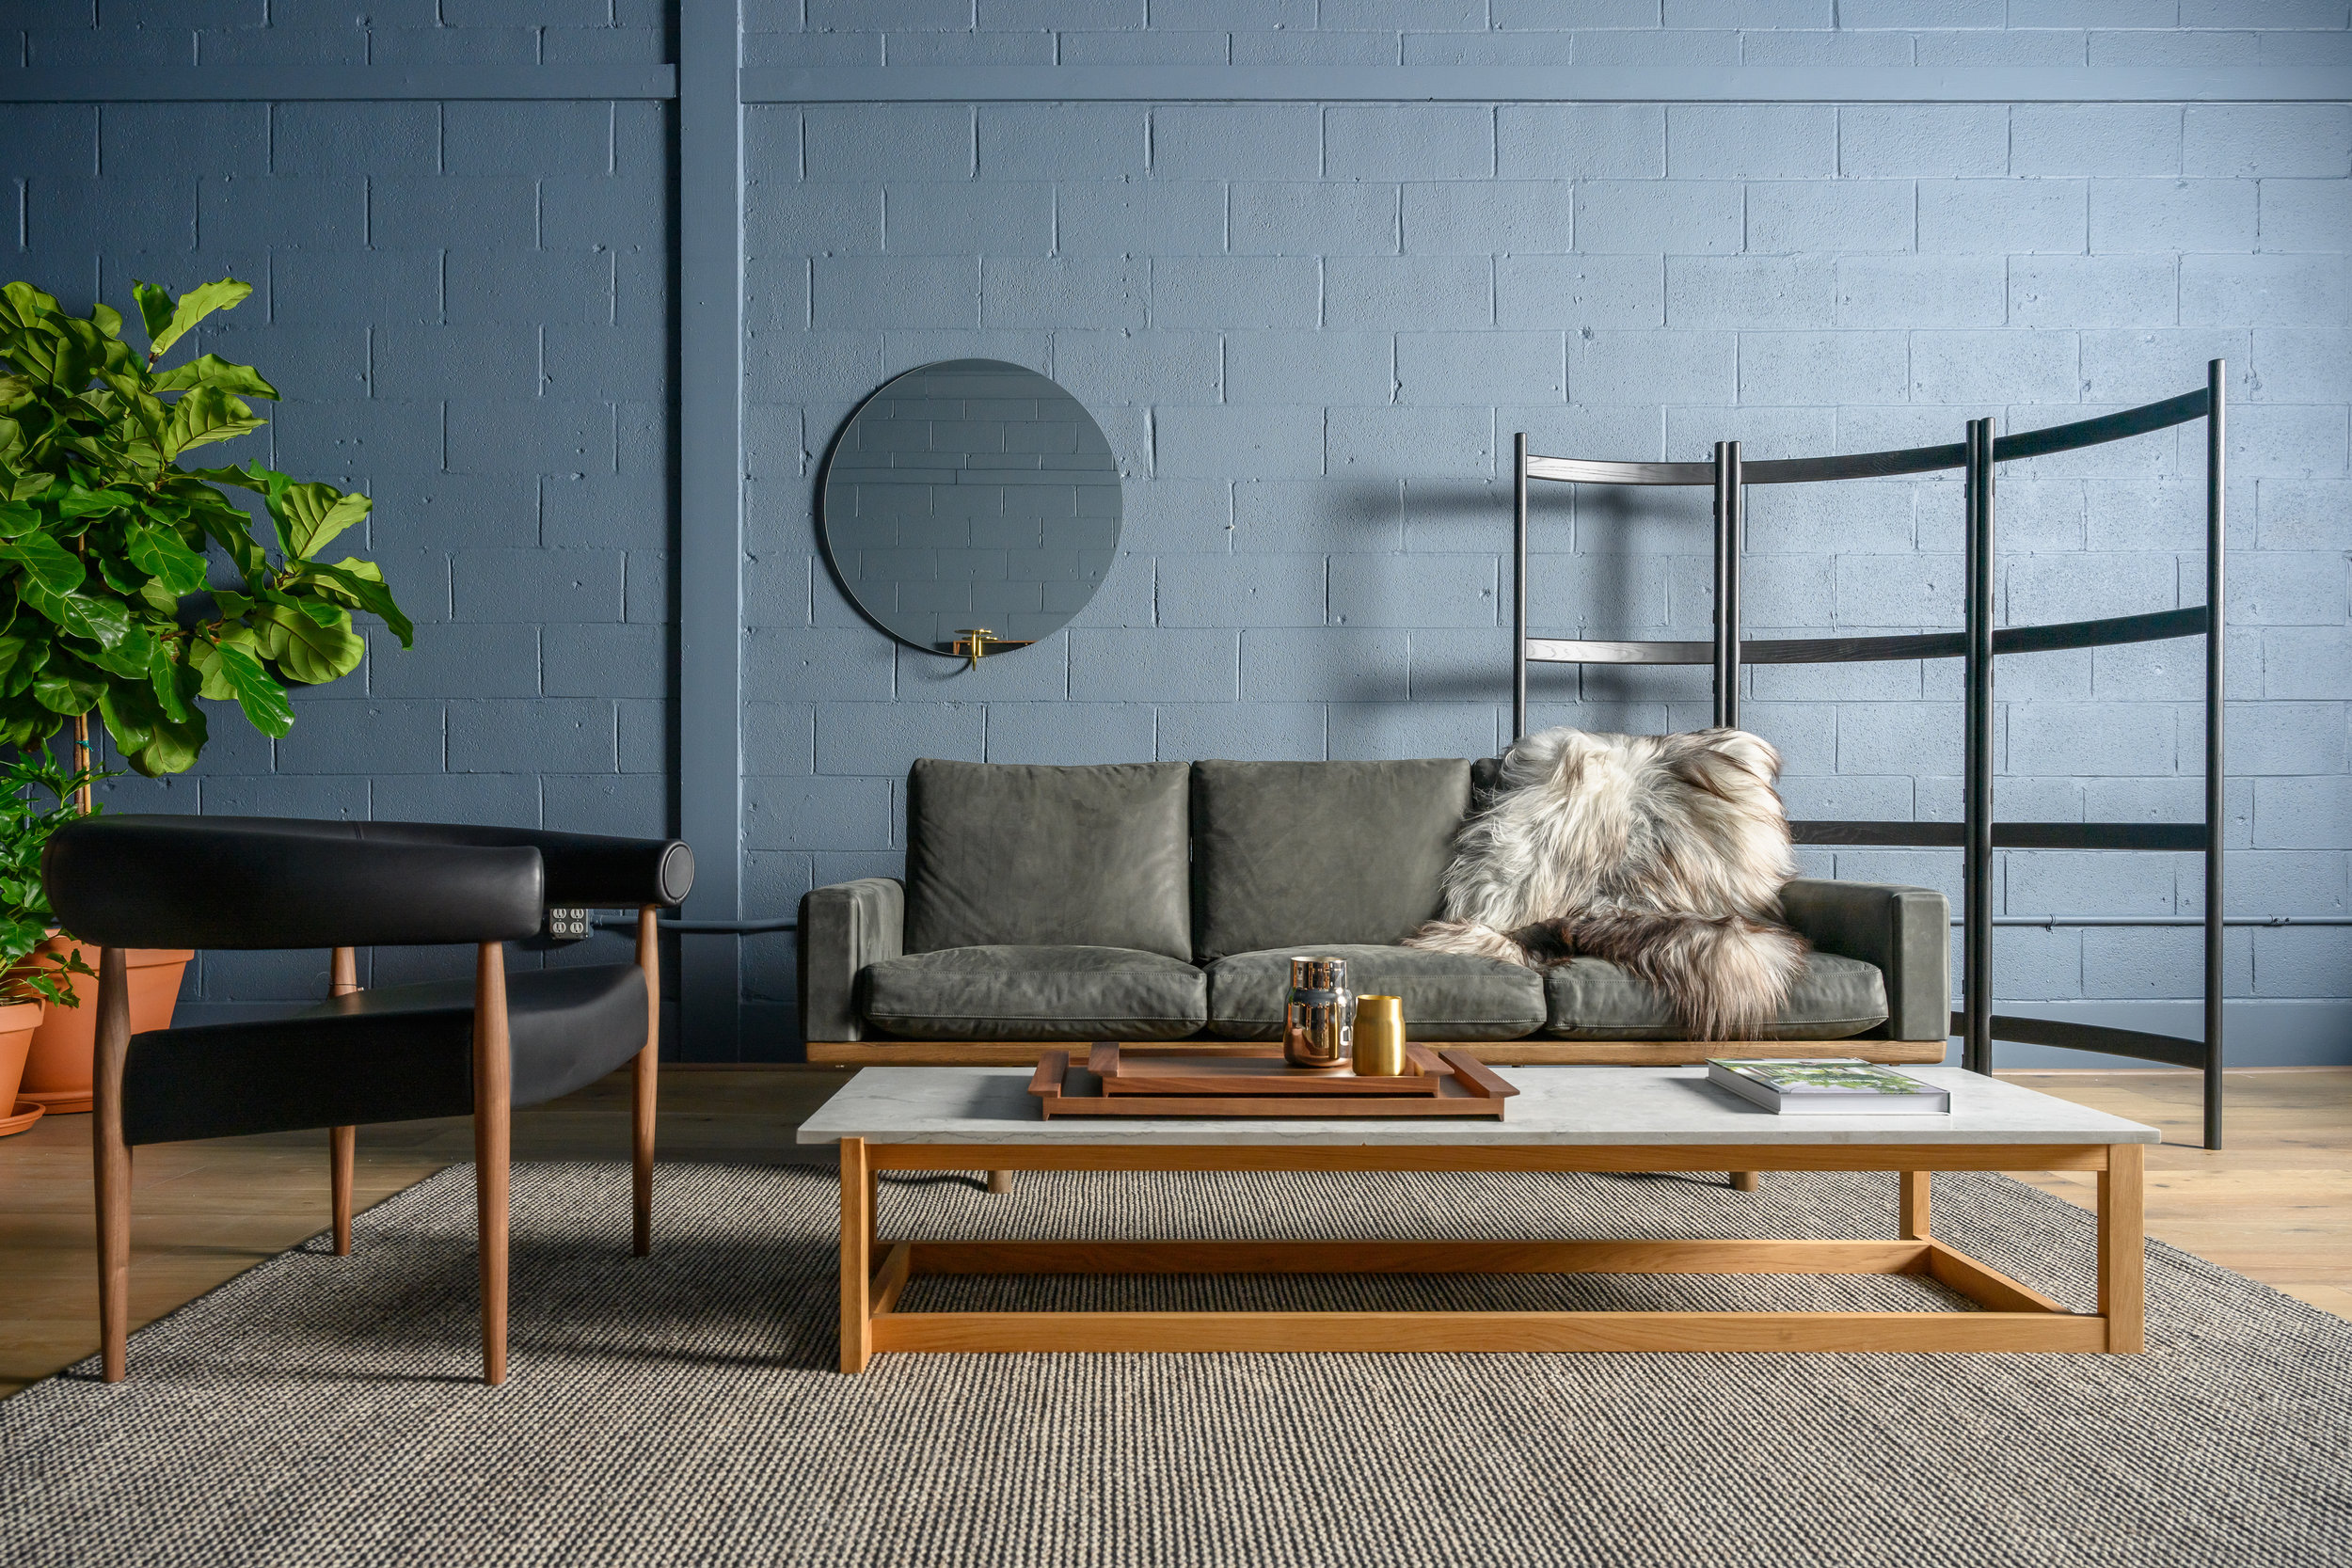 The GE236 Sofa by Hans Wegner and, the Ring Chair by Nanna Ditzel both for Getama. And the Klassik Coffee Table in marble and oak from Klassik Studios. Miro Miro Mirror from Friends and Founders, The Shoji screen designed by Gabriel Tab for Ariake.